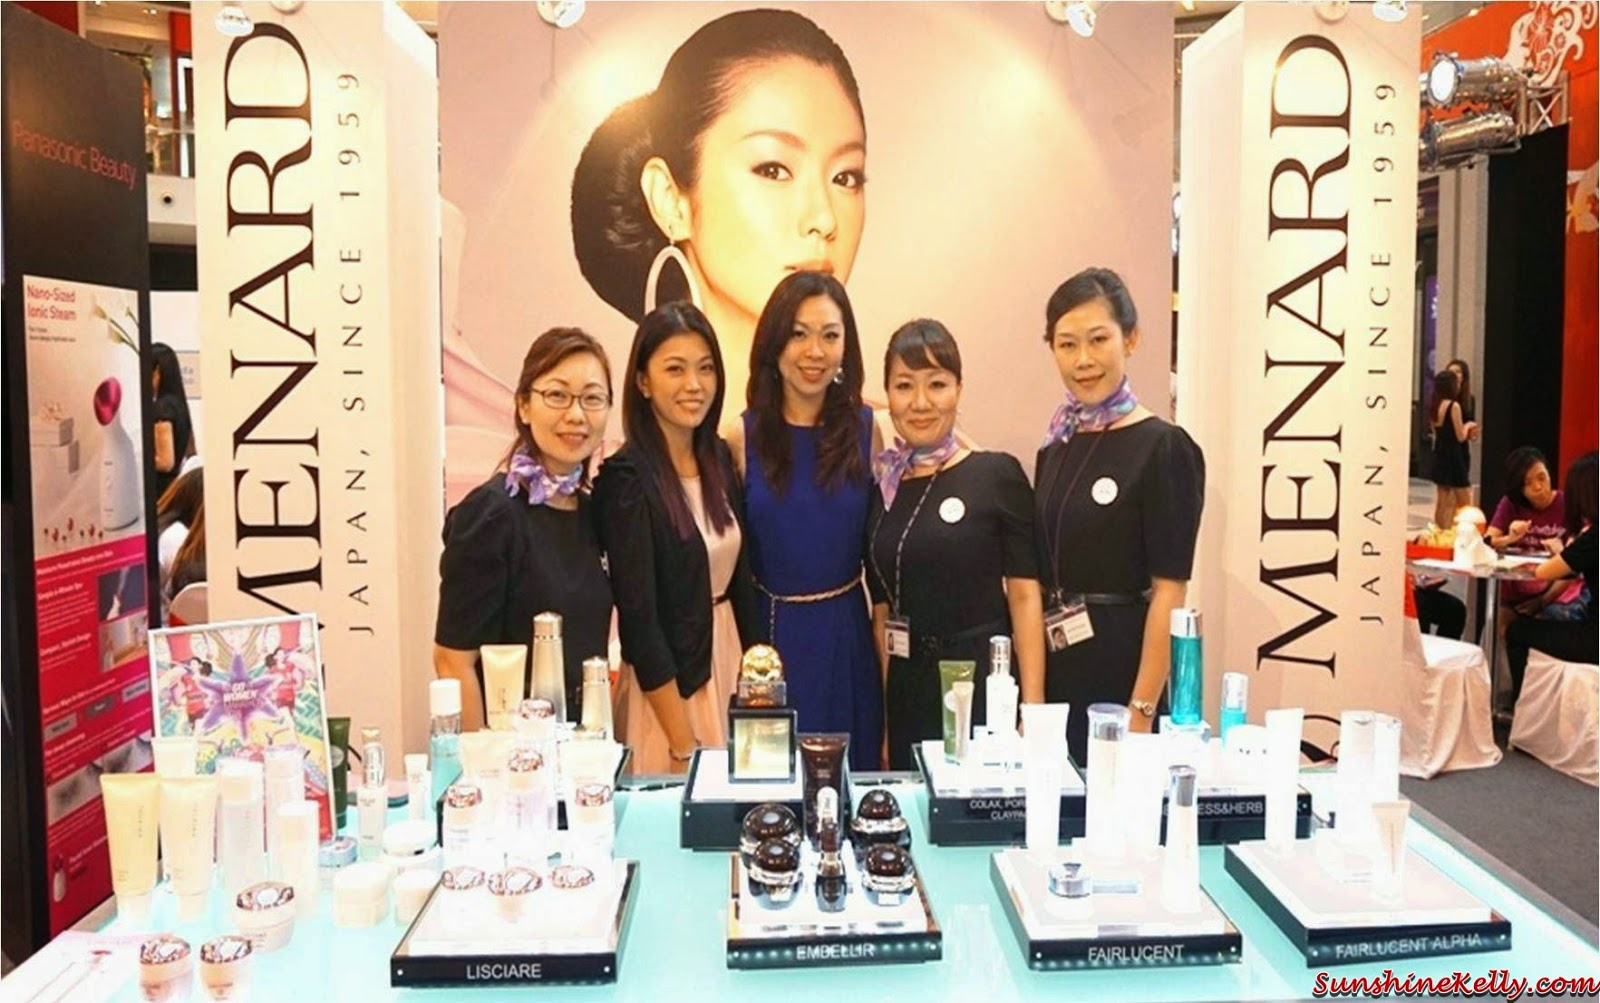 menard team, Menard Lisciare Review & On Stage with Ayumi, menard, lisciare, menard lisciare, skincare, on stage, japan skincare, japan beauty products, japan beauty week